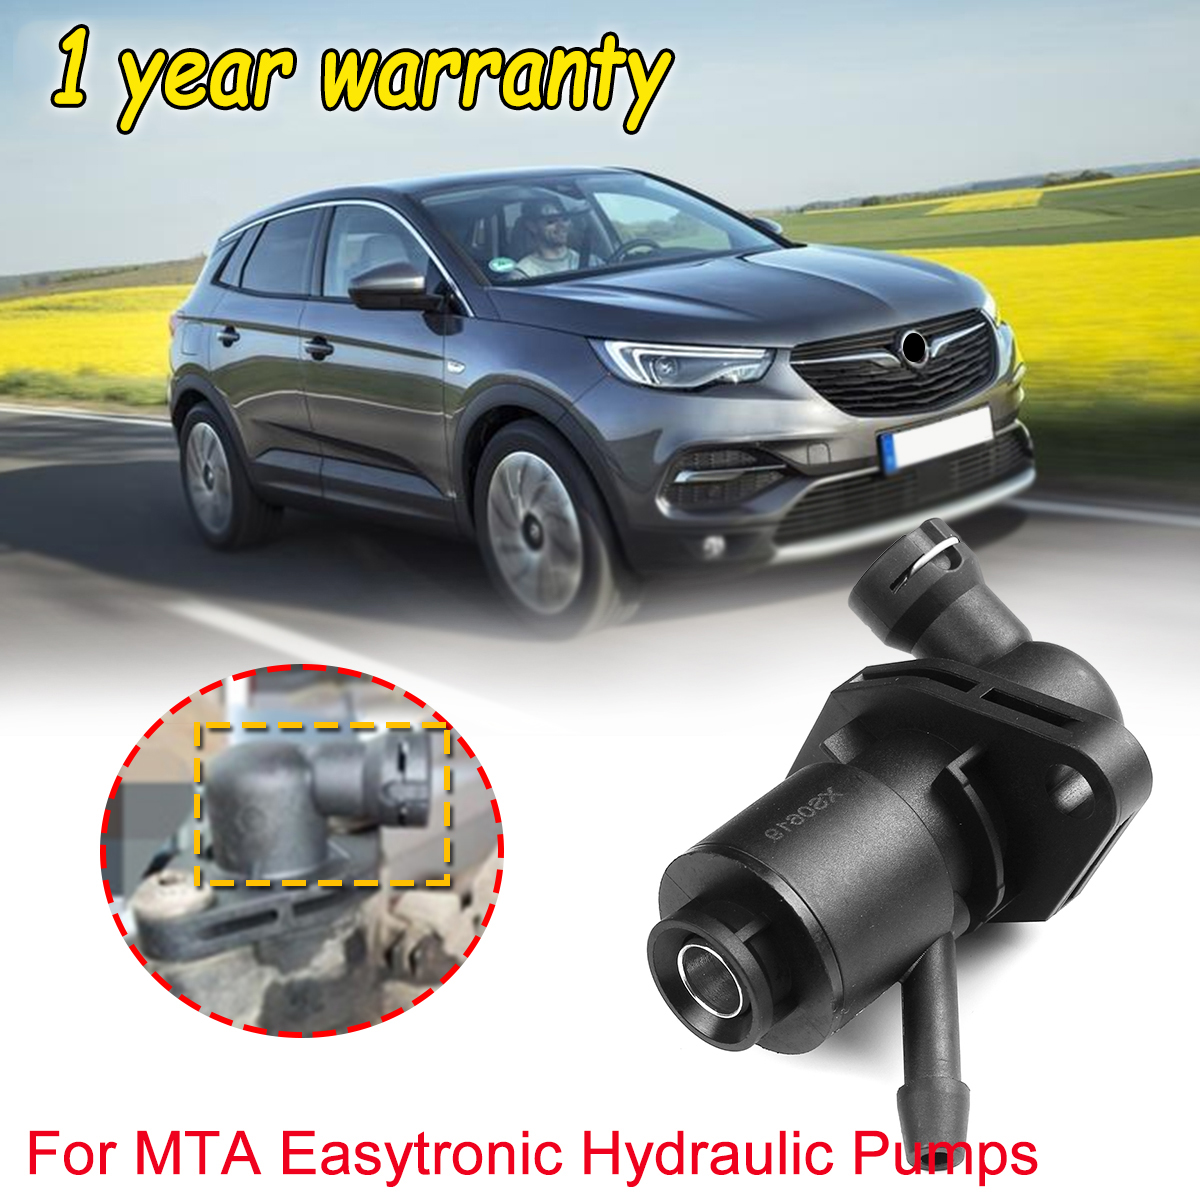 ABS MTA Easytronic Hydraulic Pumps Modules All Models and Durashift For Opel For Vauxhall Corsa C 2000-2006 G1D500201